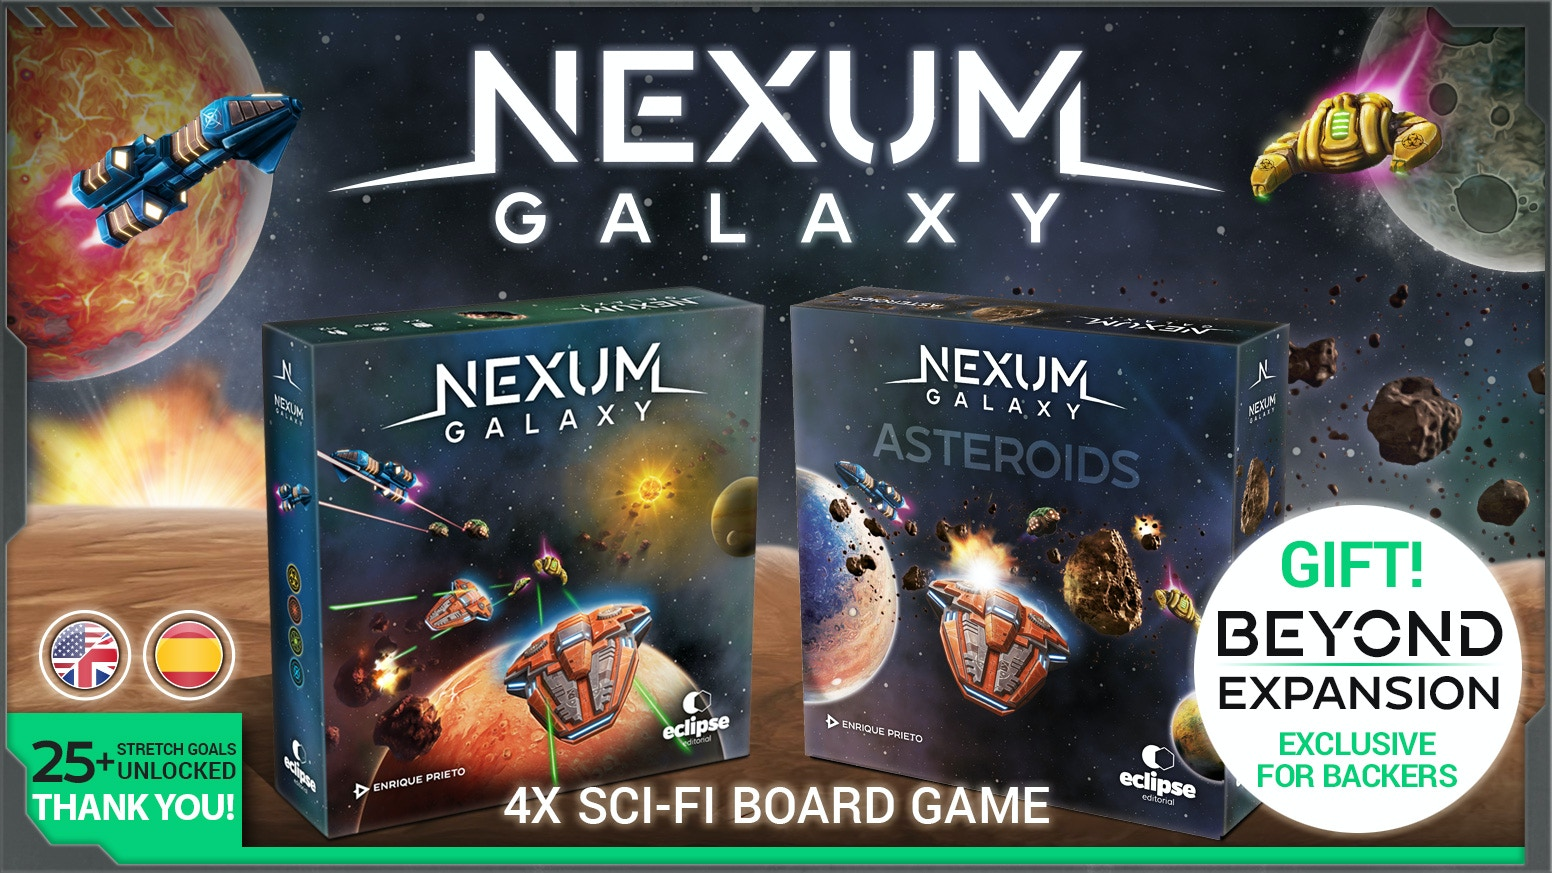 A 4X Sci-Fi game: eXplore, eXpand, eXploit, eXterminate. Lead your civilization to victory using NEXUM technology and rule the Galaxy!